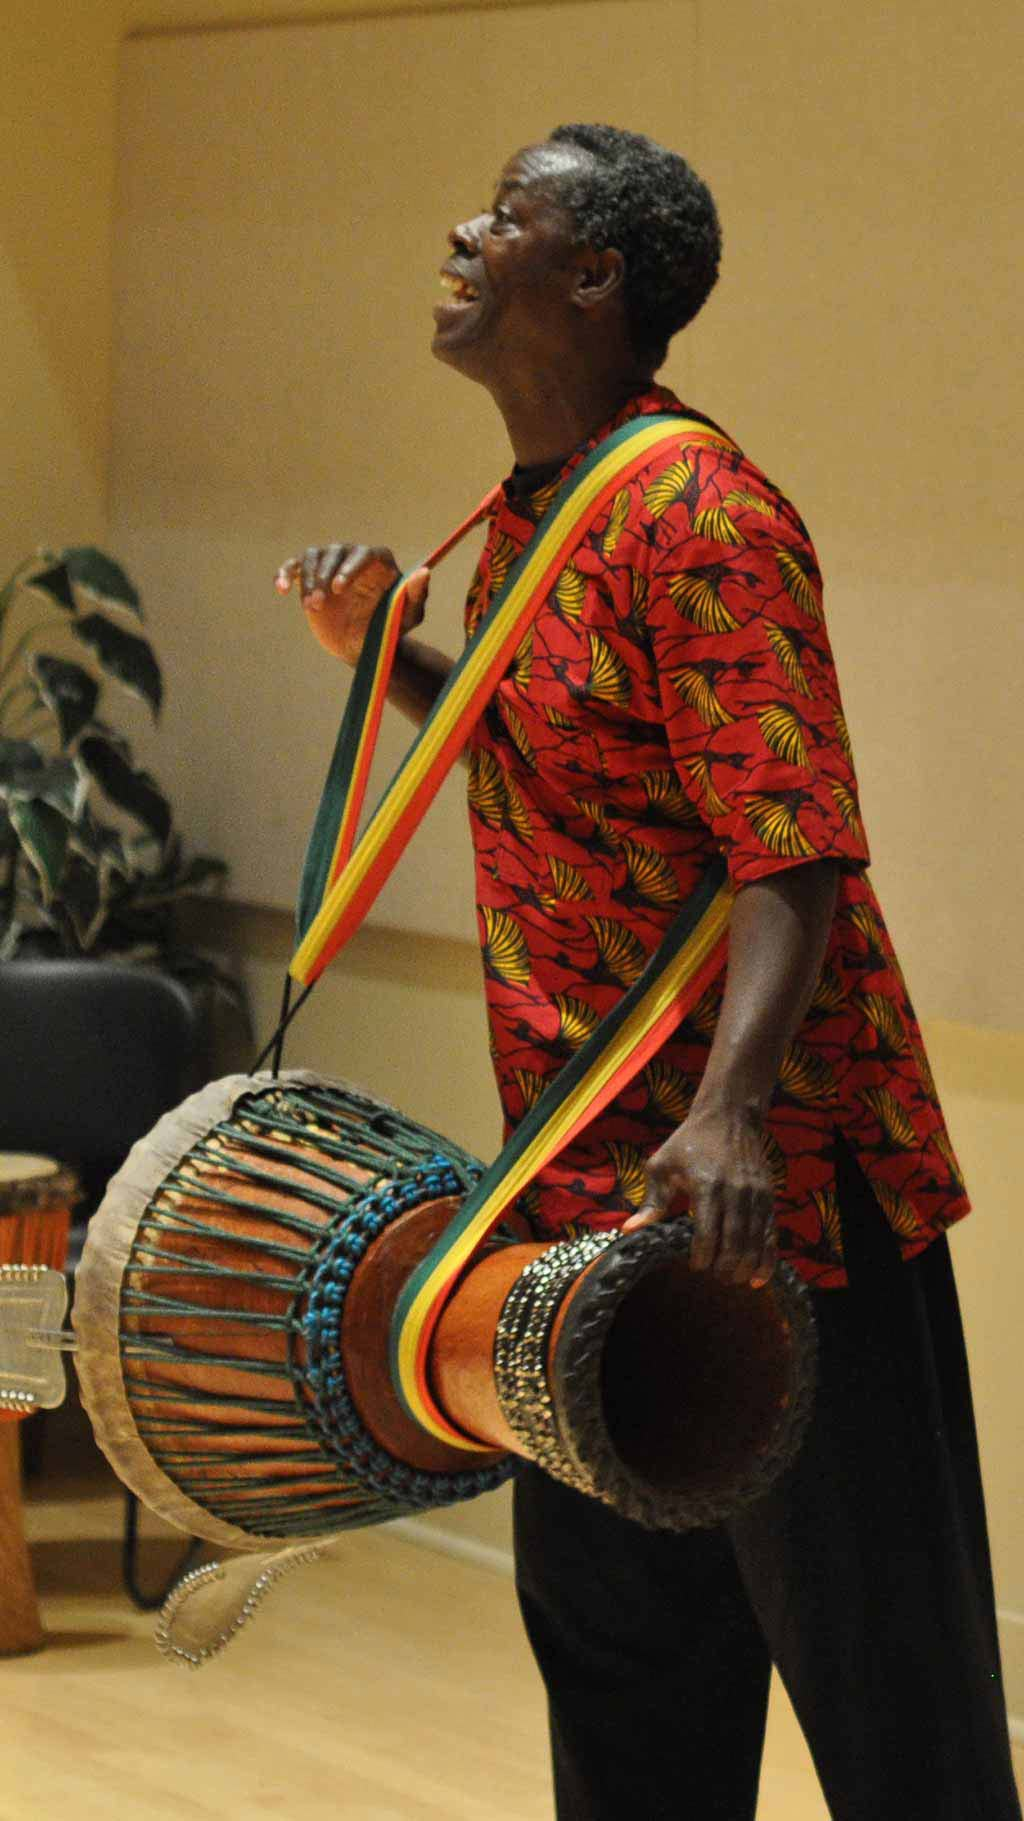 man performing with an African drum